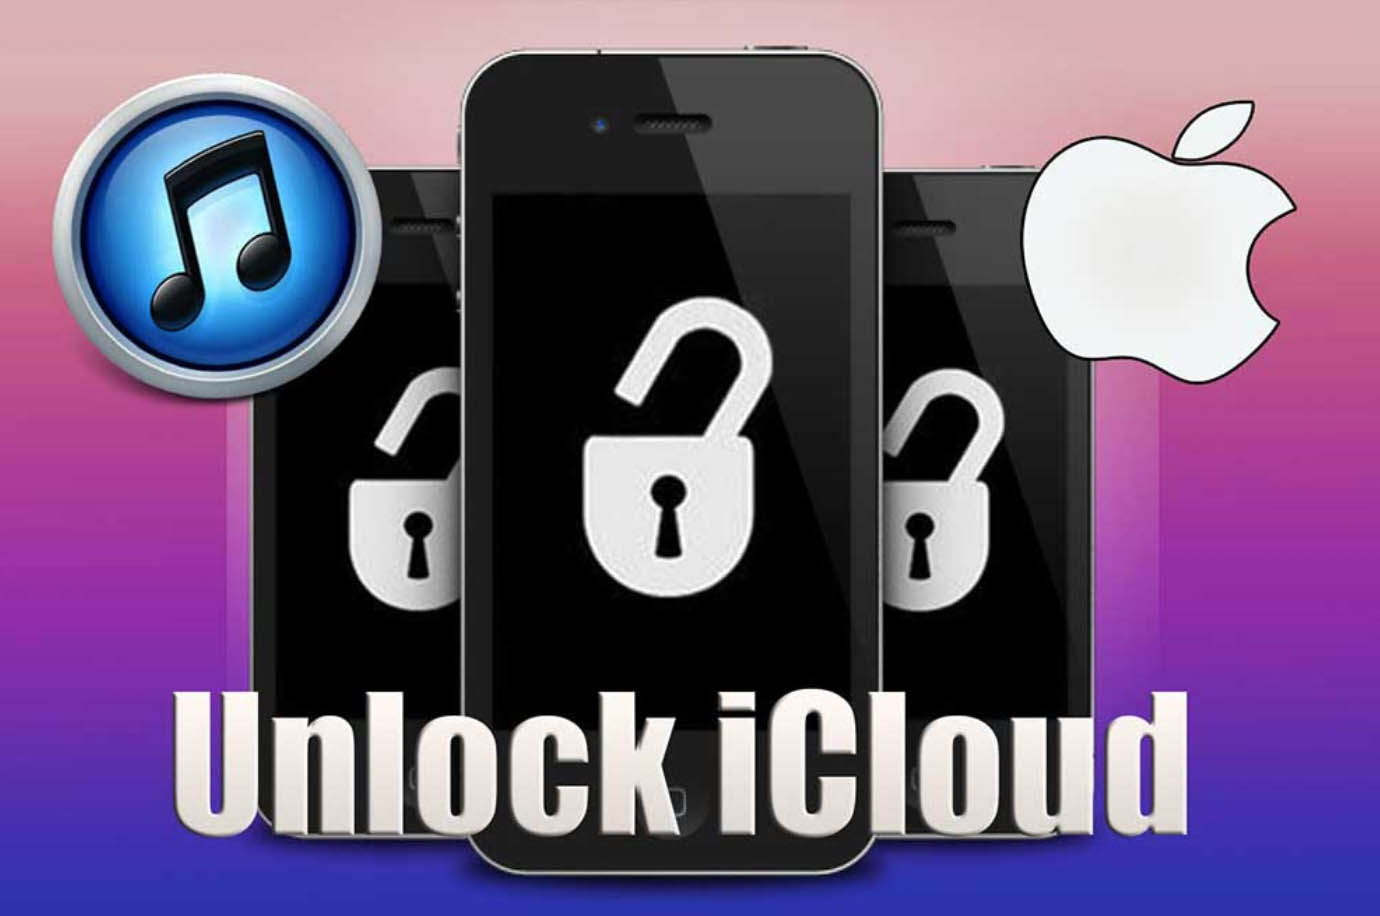 Unlock iCloud Activation Lock on iPhone/iPad/Apple Watch - [For FREE]